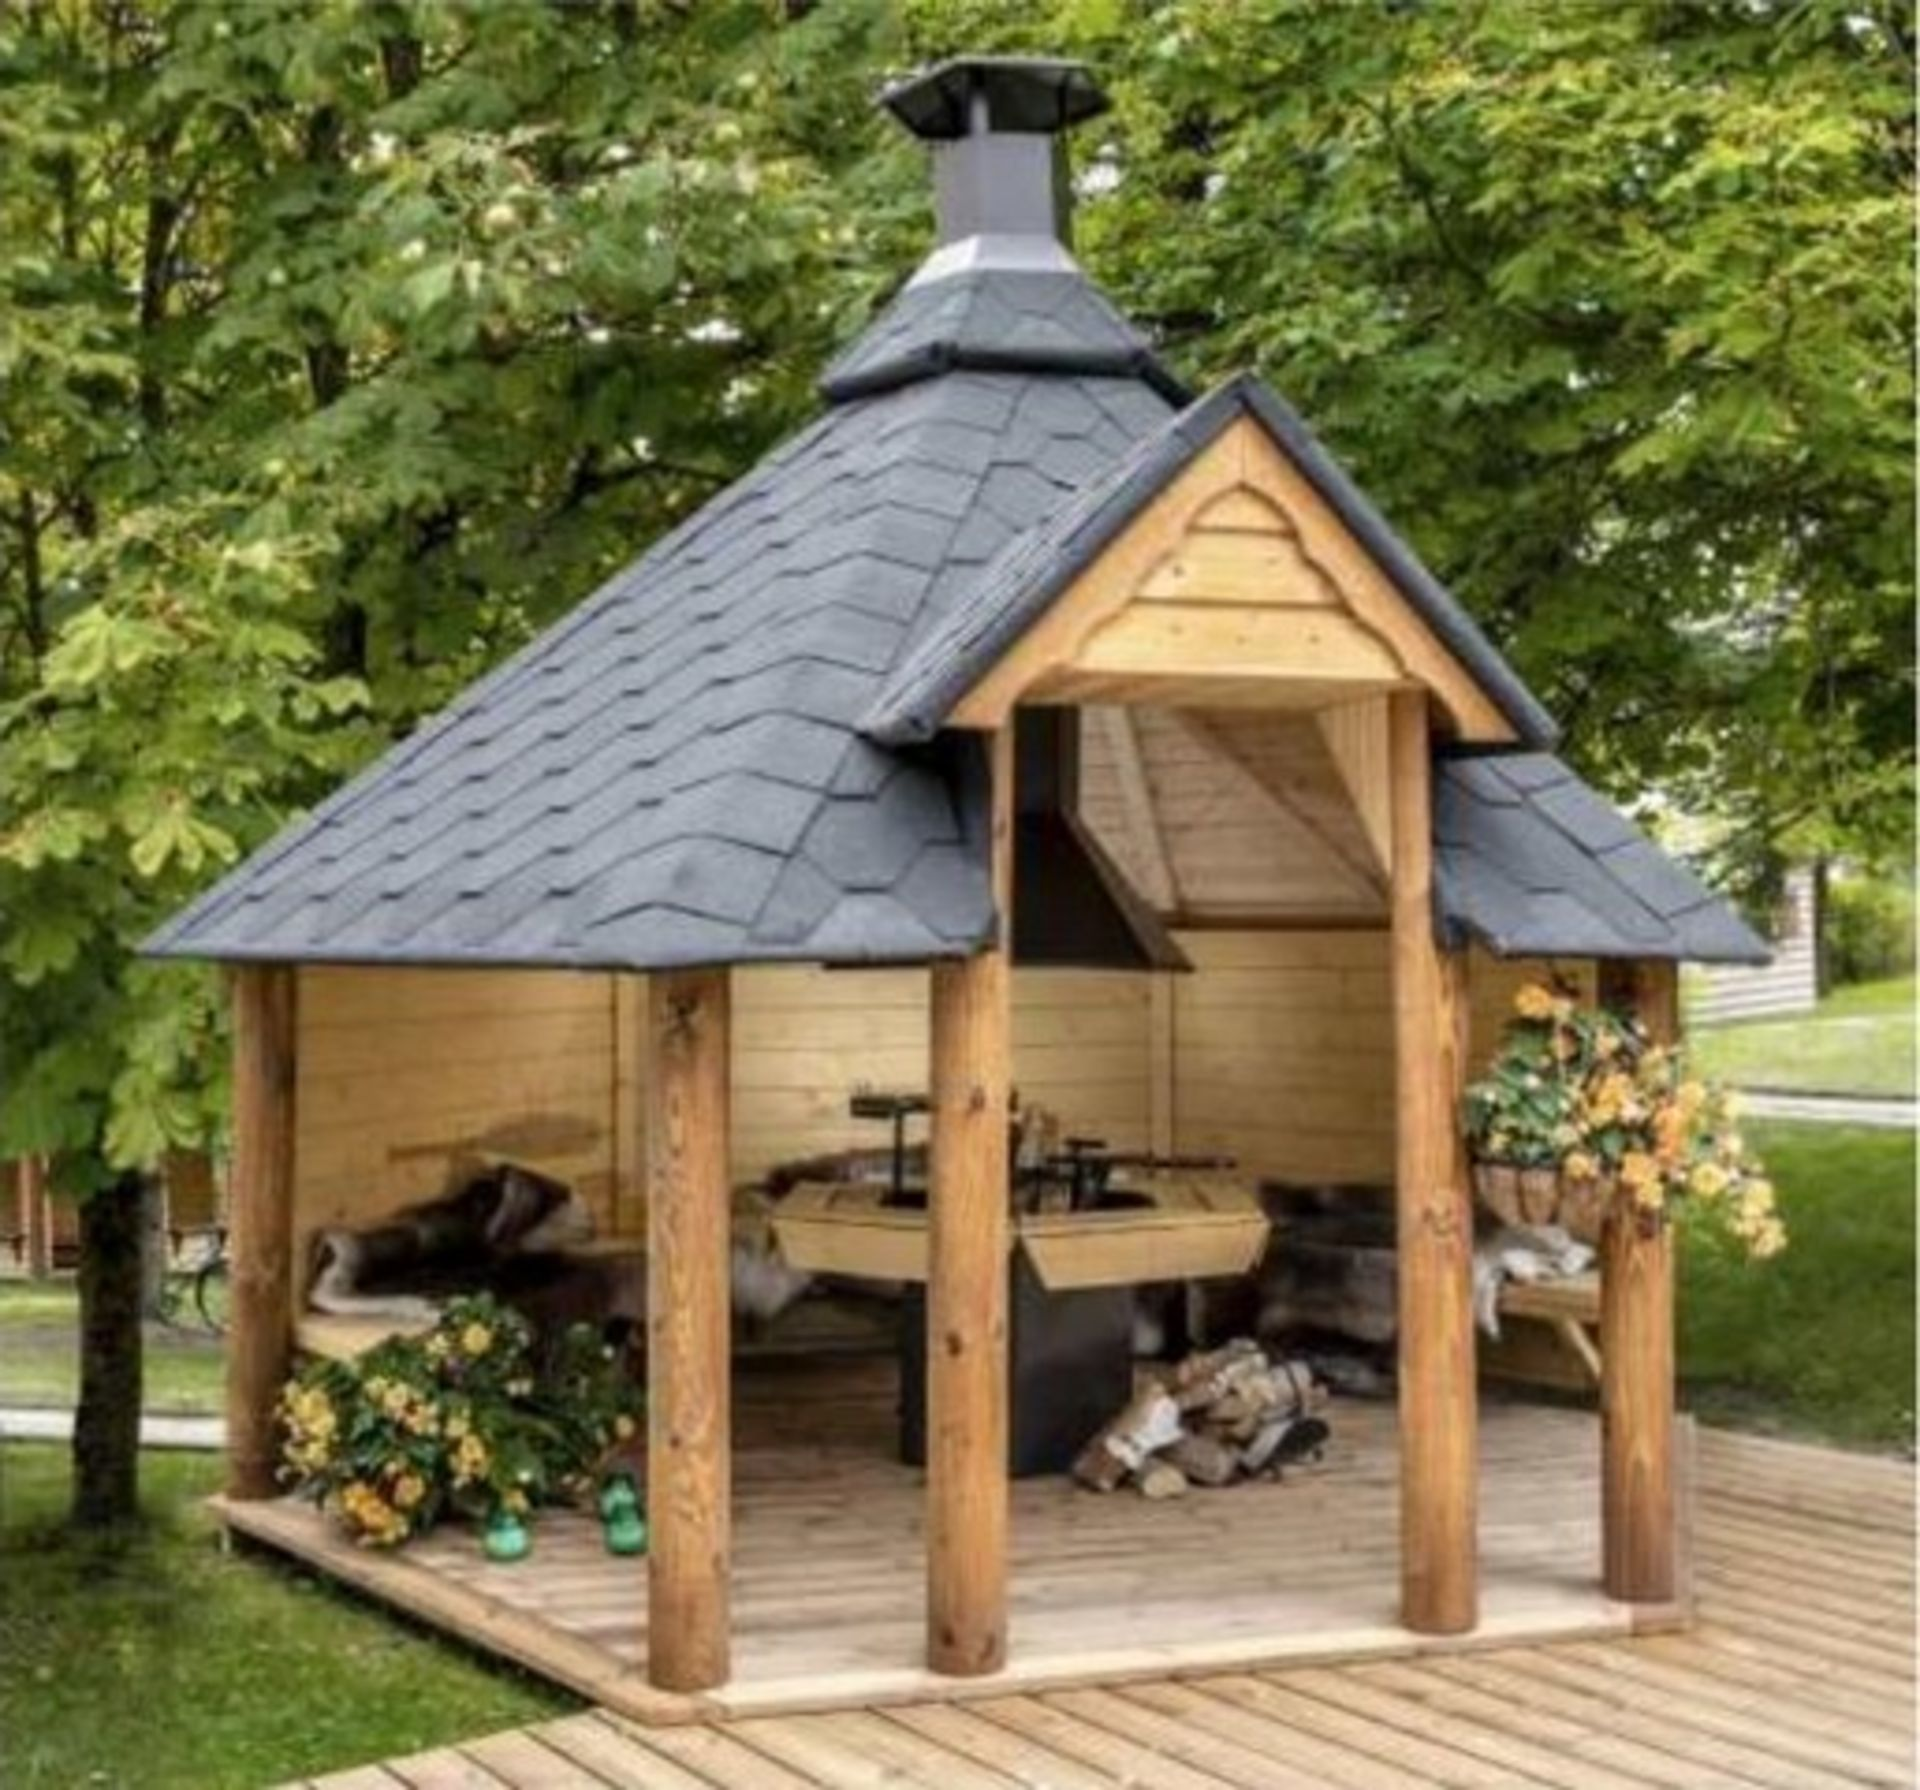 Lot 18038 - V Brand New 9.2m sq 6 Corner Spruce Open Grill Cabin - Inside Grill with Cooking Platforms and Table